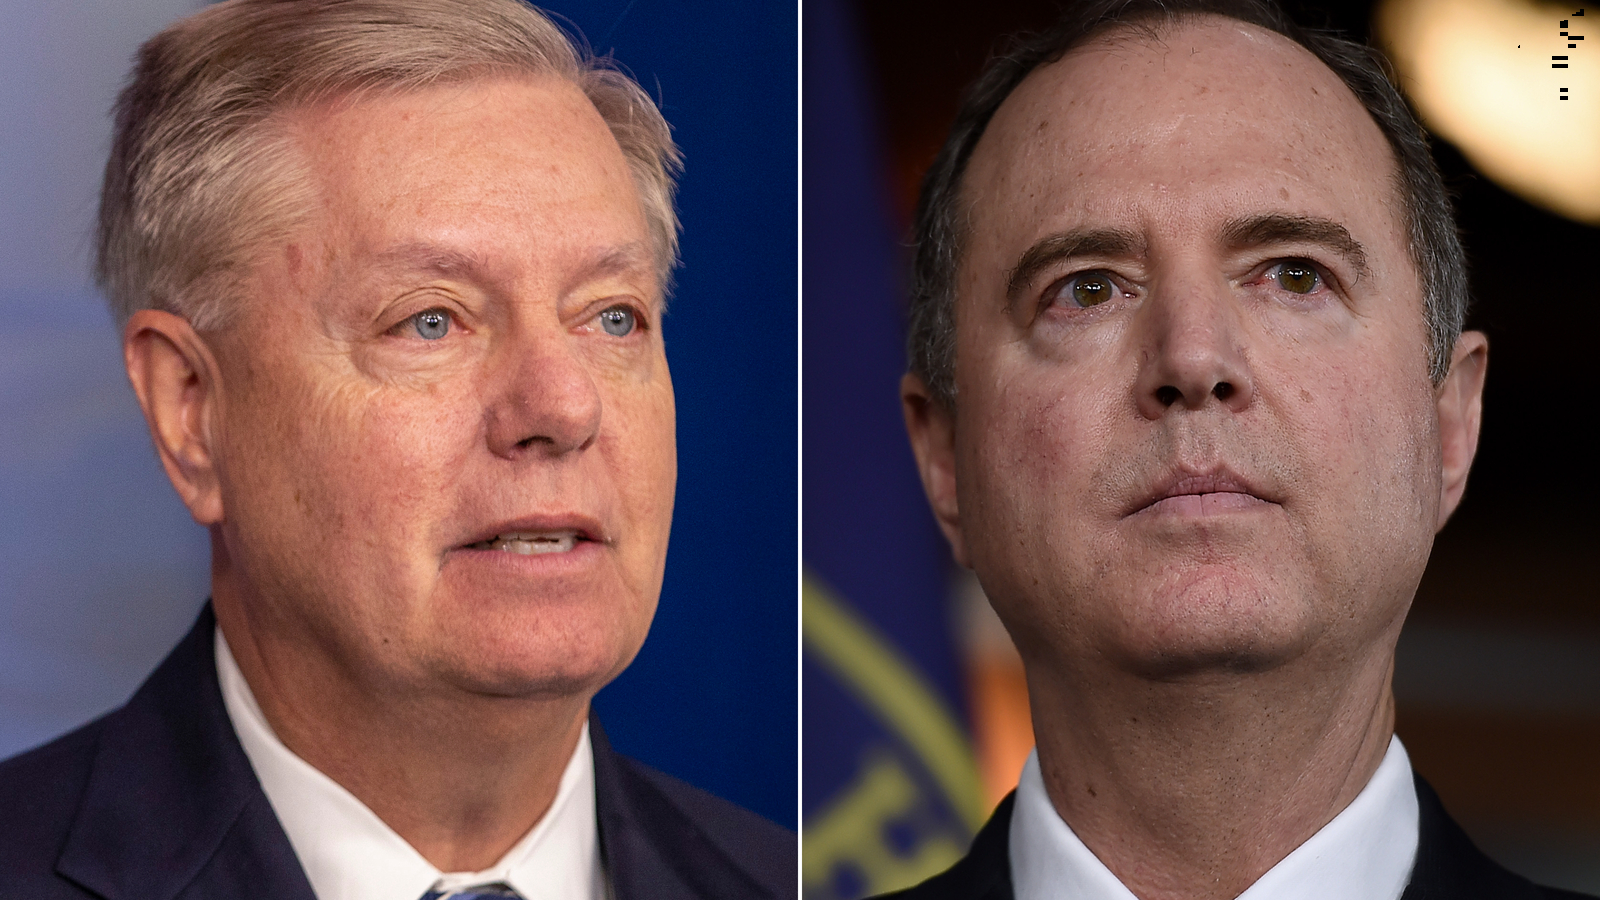 Graham congratulated Schiff on 'good job' in presenting argument in Senate impeachment trial